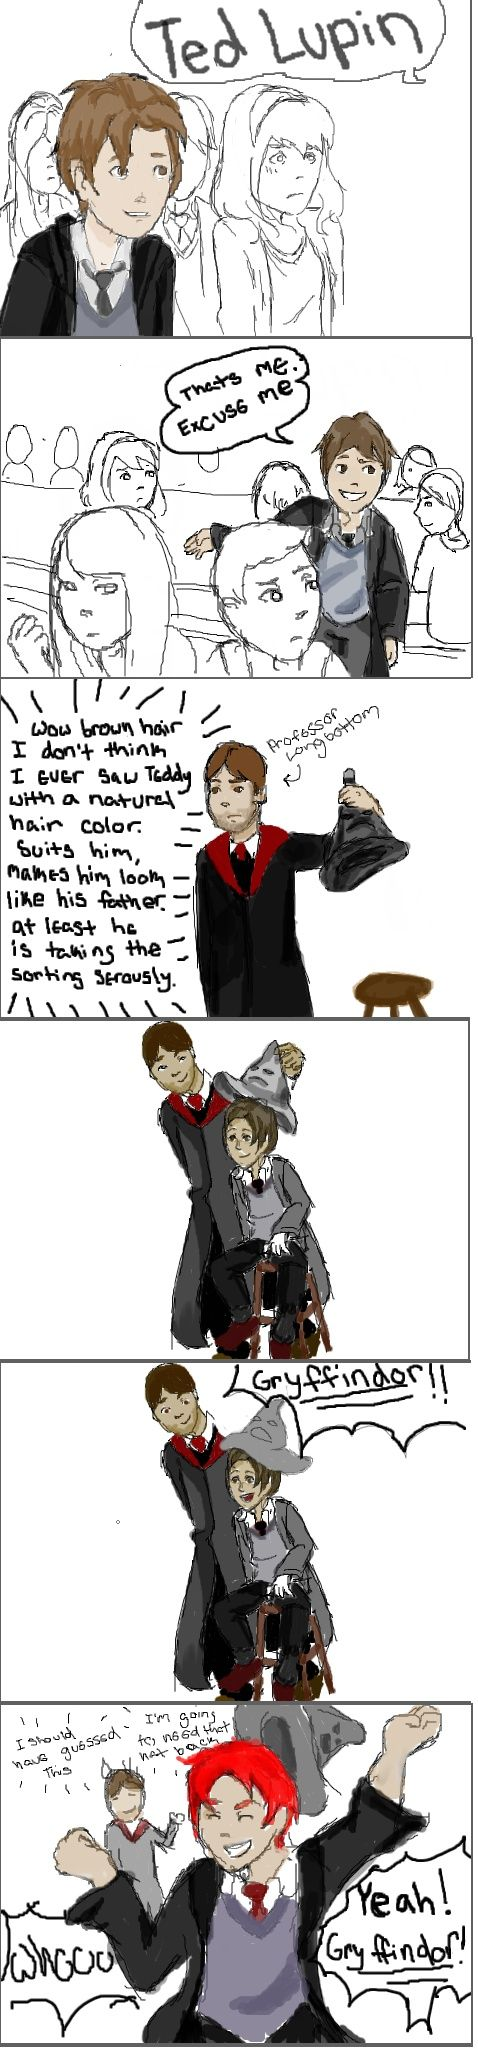 Teddy Lupin and the Sorting by DidxSomeonexSayxMad.deviantart.com on @deviantART: